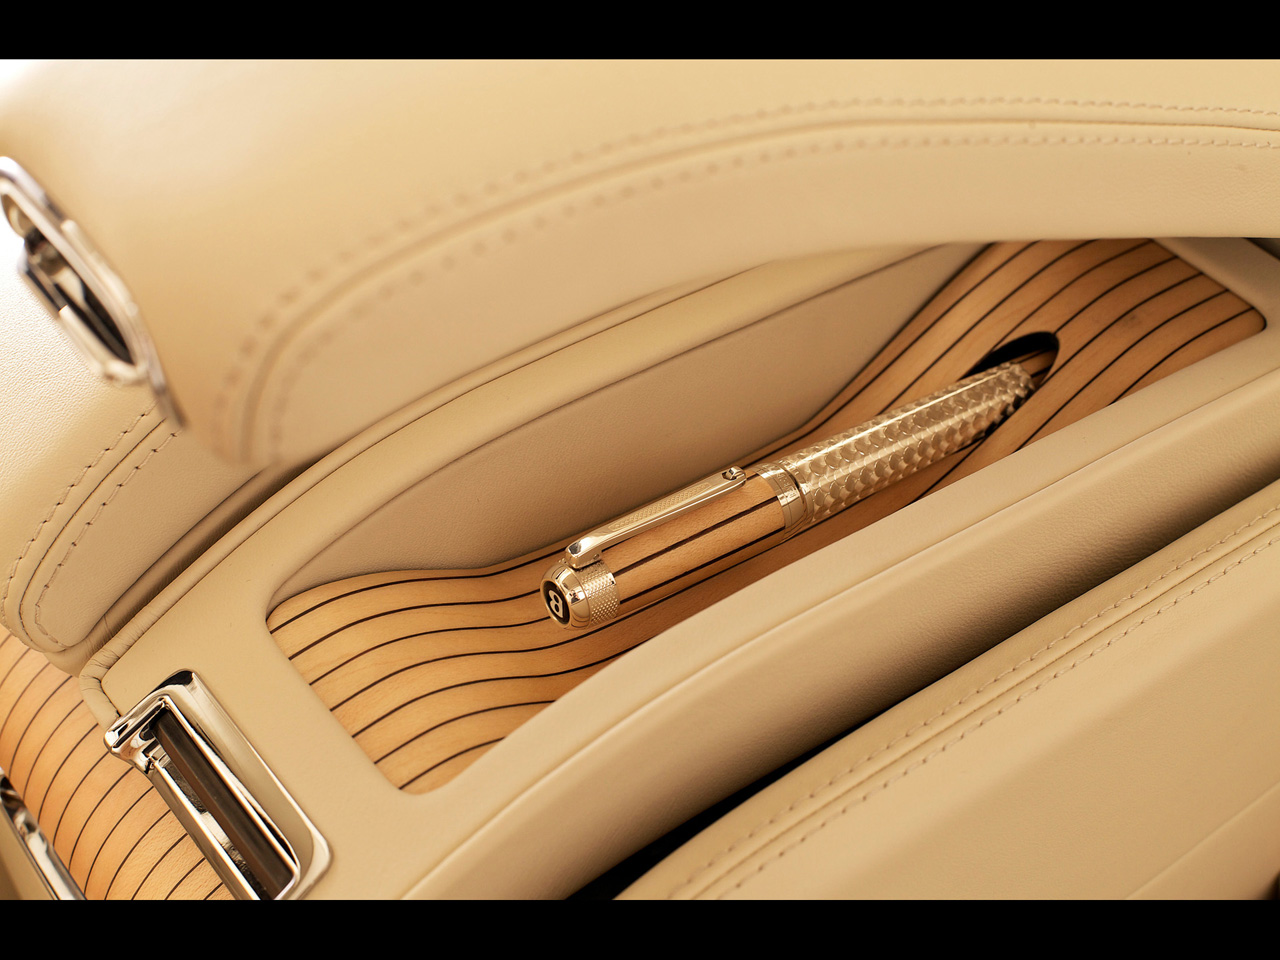 2012-Bentley-Mulsanne-Executive-Interior-Matching-Tibaldi-pen-1280x960 (1).jpg